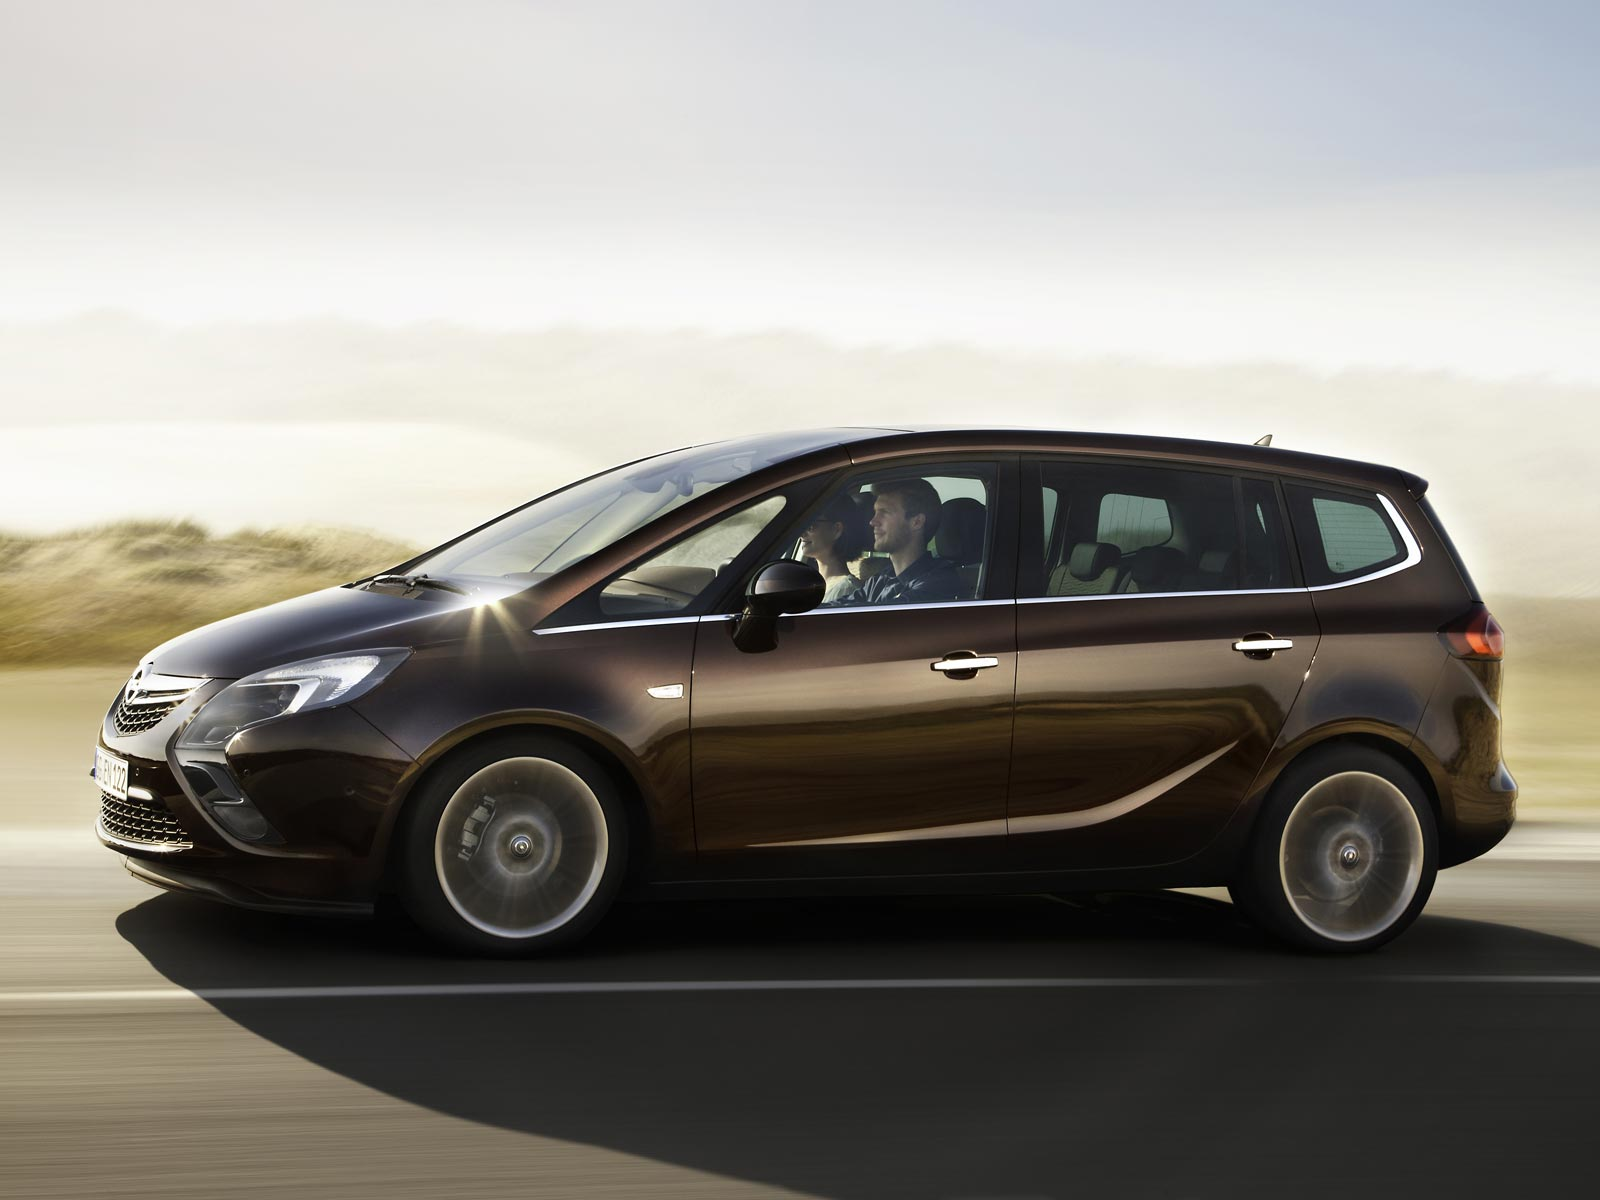 2019 Opel Zafira Car Photos Catalog 2019